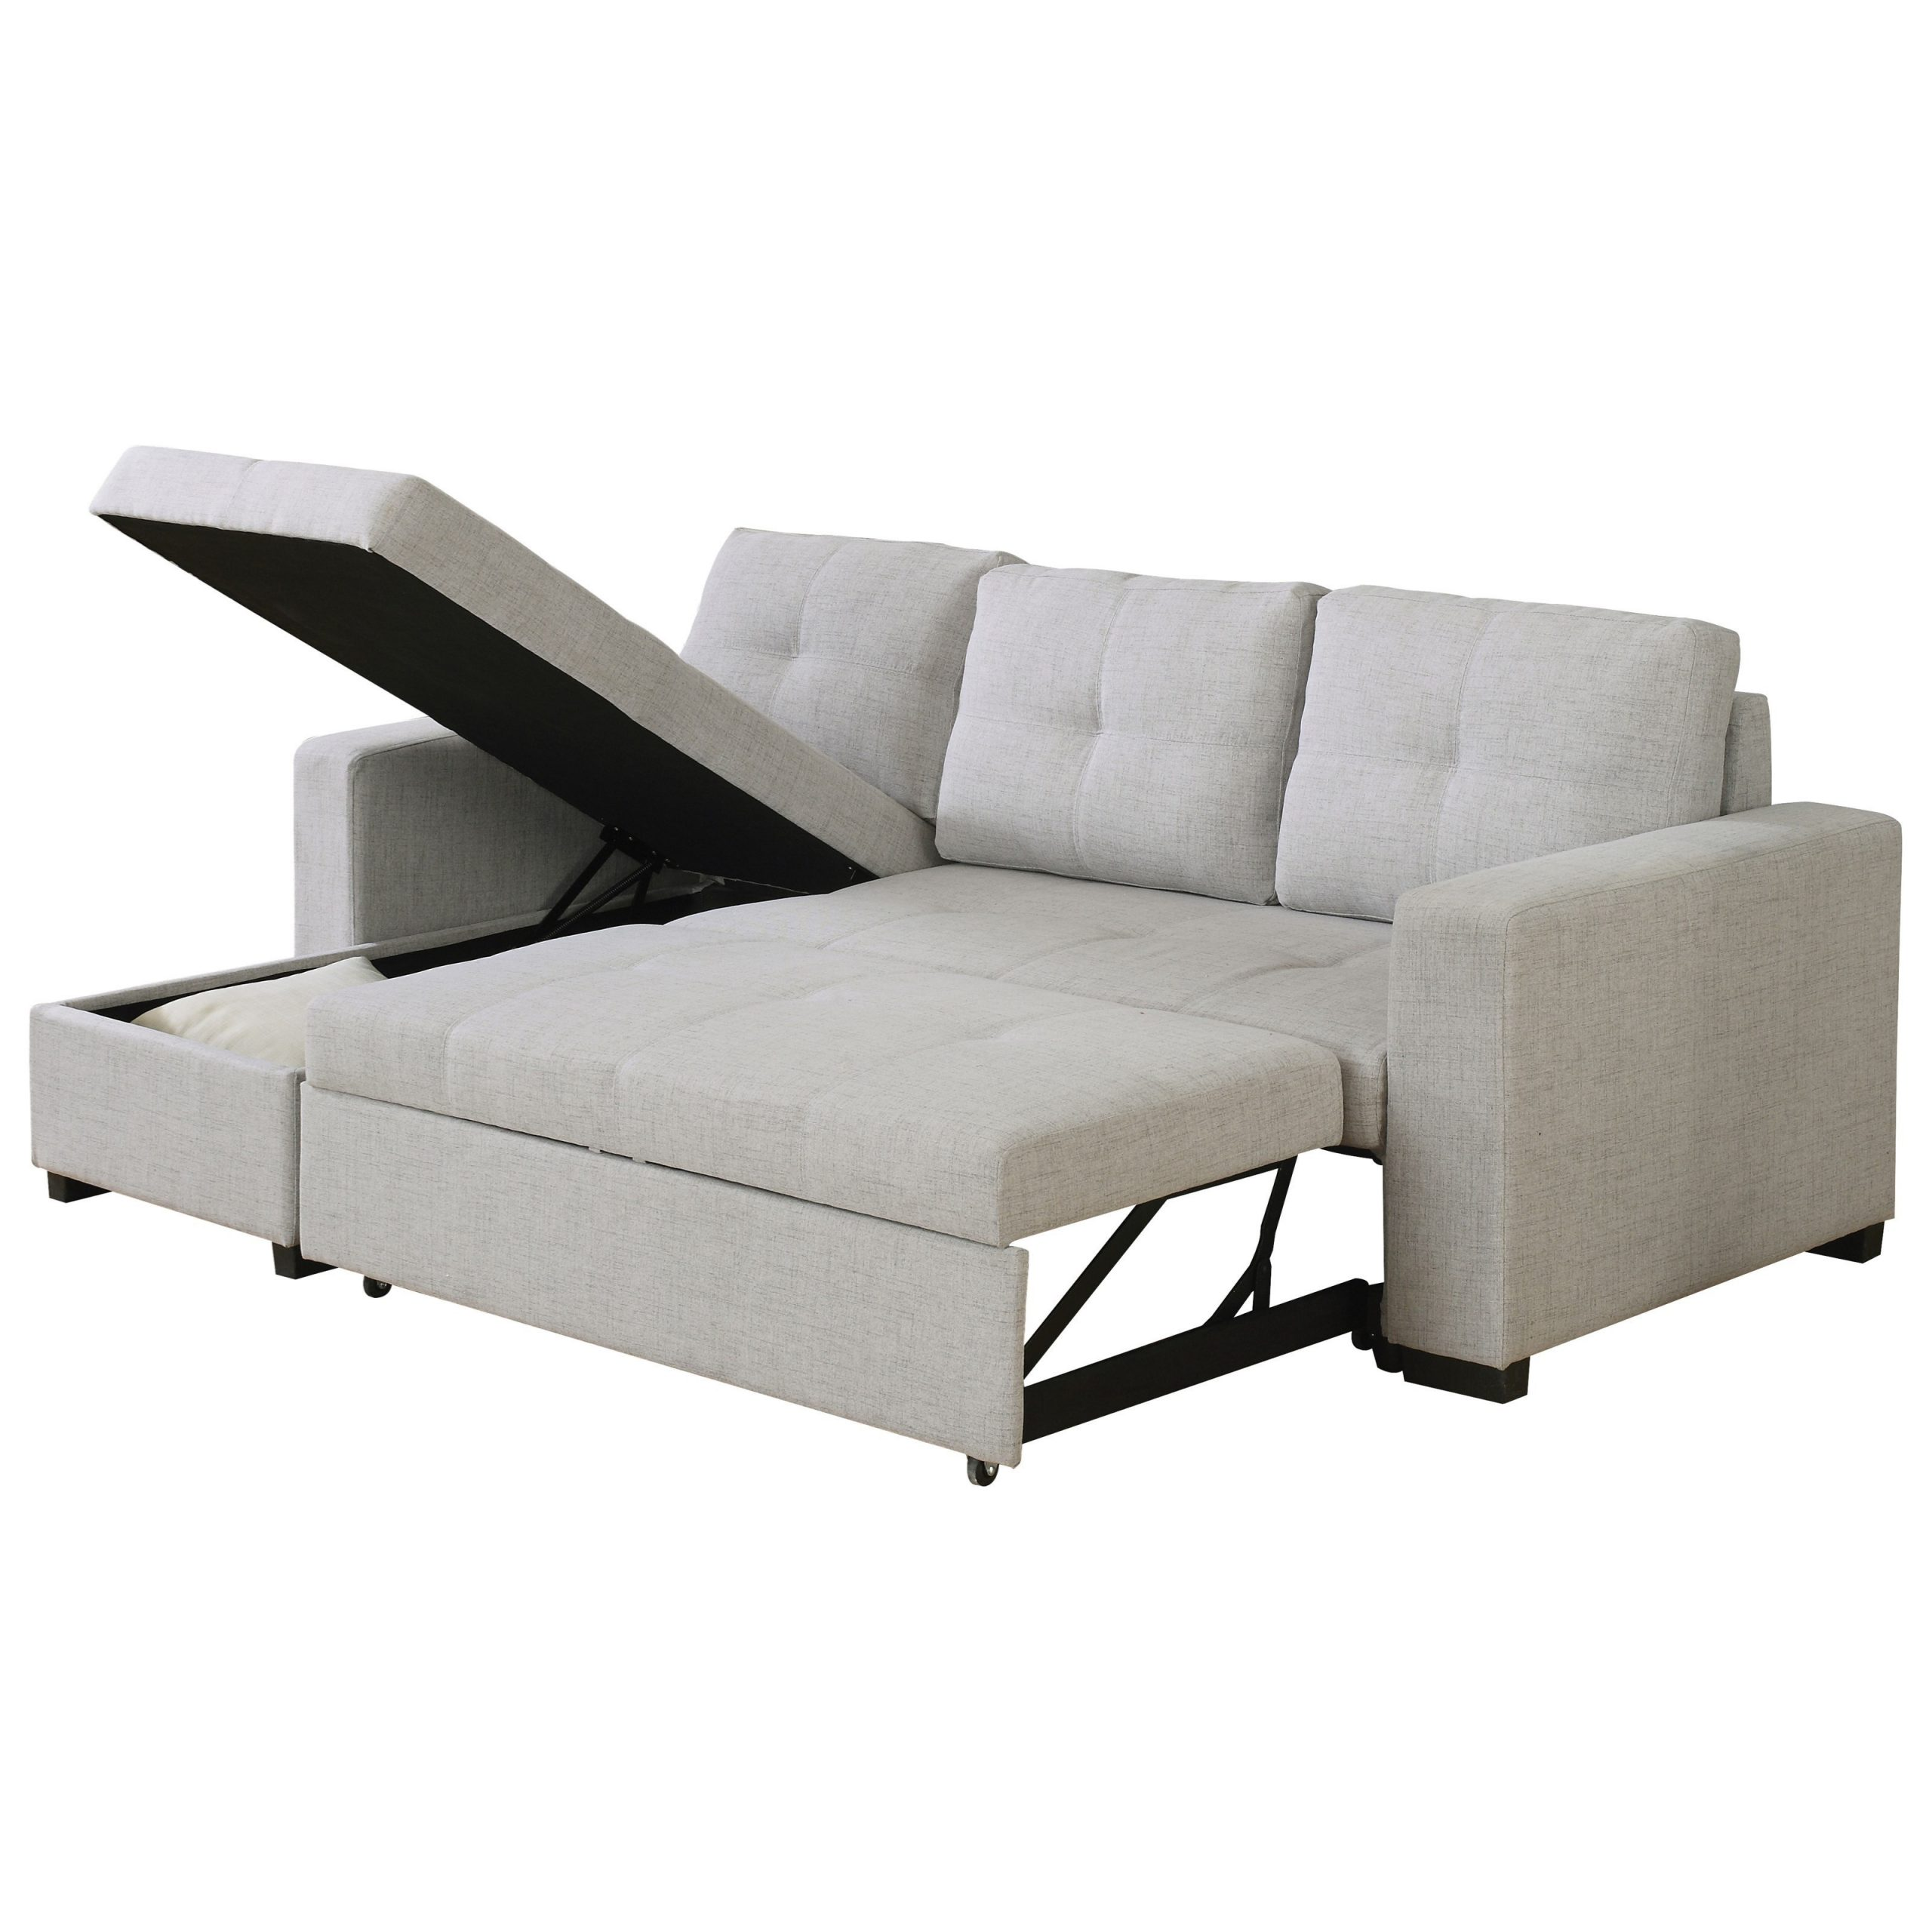 Most Current Everly Beige Reversible Sectional Sofa With Sleeper Within Copenhagen Reversible Small Space Sectional Sofas With Storage (View 16 of 20)